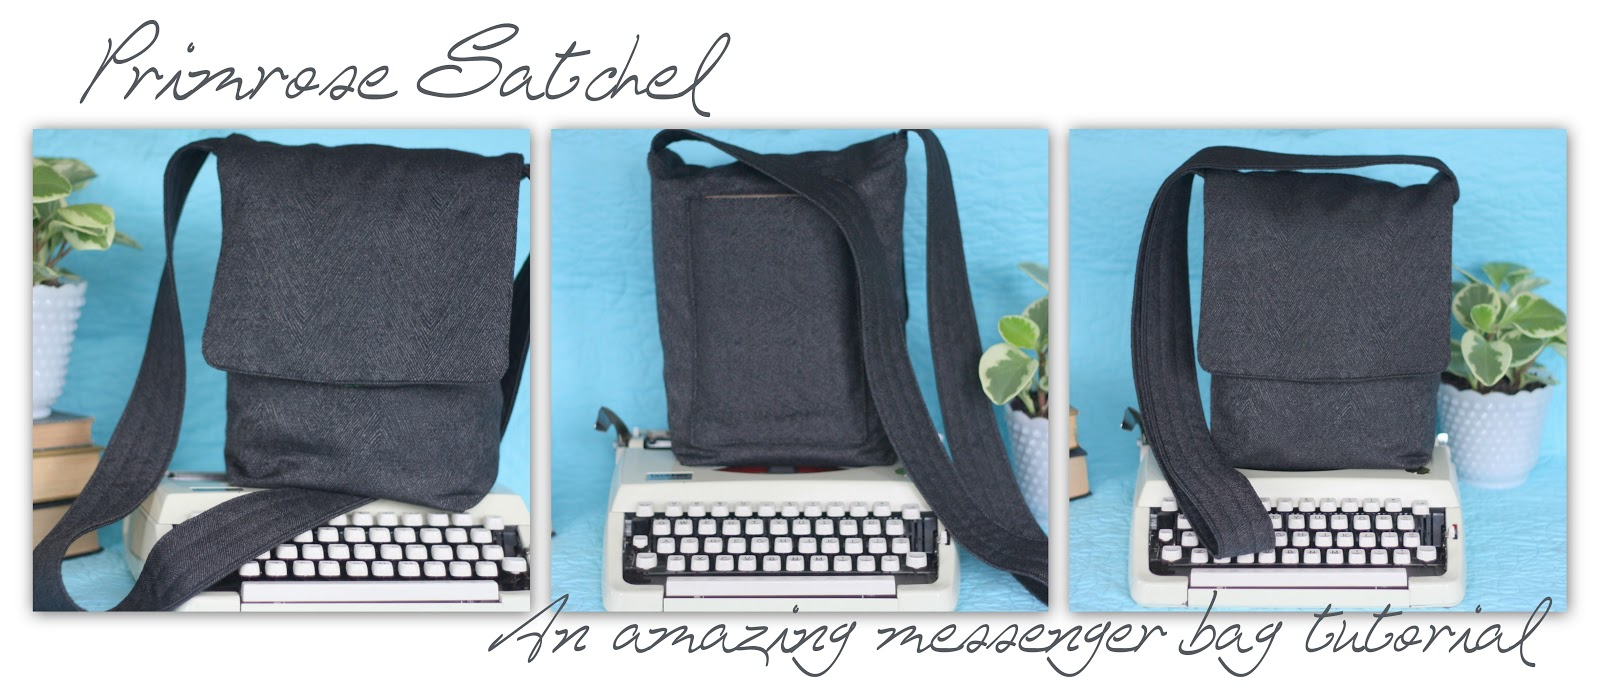 Click to download free PDF for the Primrose Satchel Messenger Bag Tutorial.